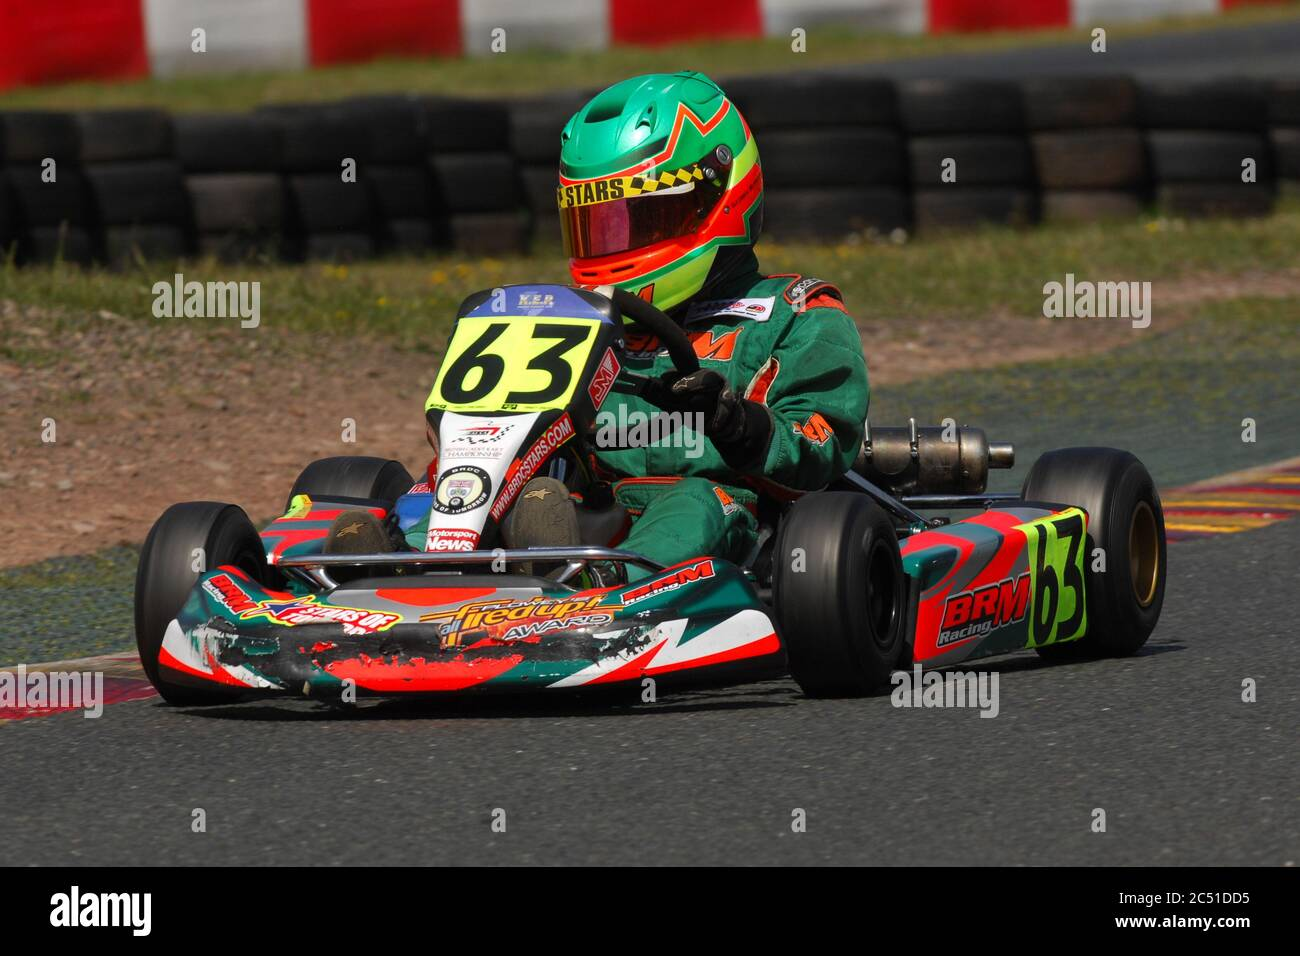 Williams F1 driver George Russell in his early Karting career. Stock Photo